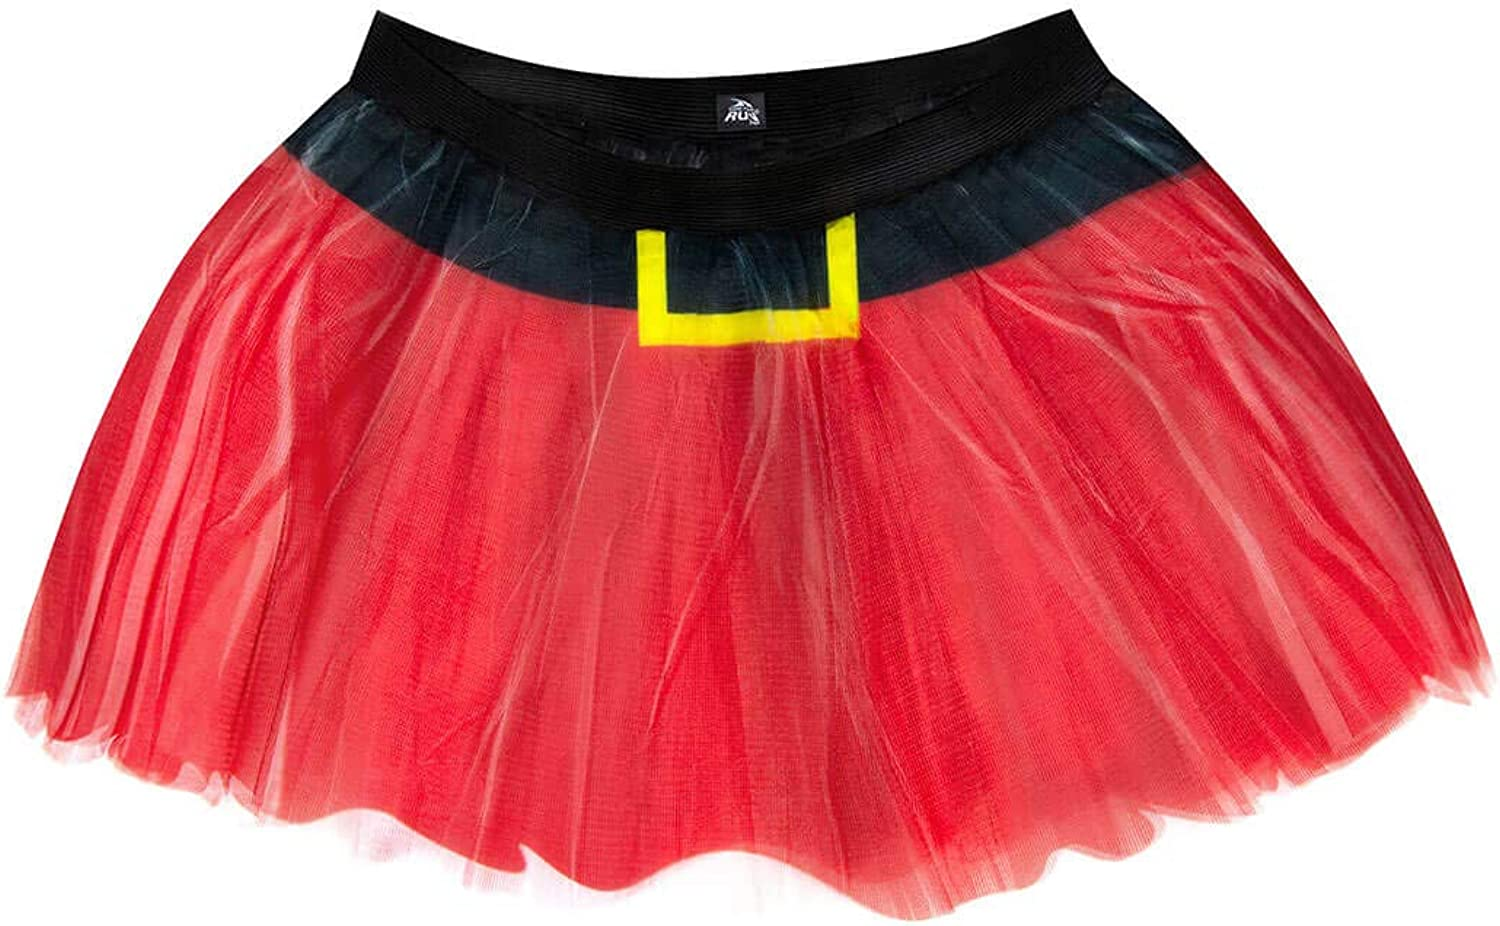 Gone For a Run Runners Printed Tutu Lightweight   One Size Fits Most   colorful Running Skirts   Santa Skirt